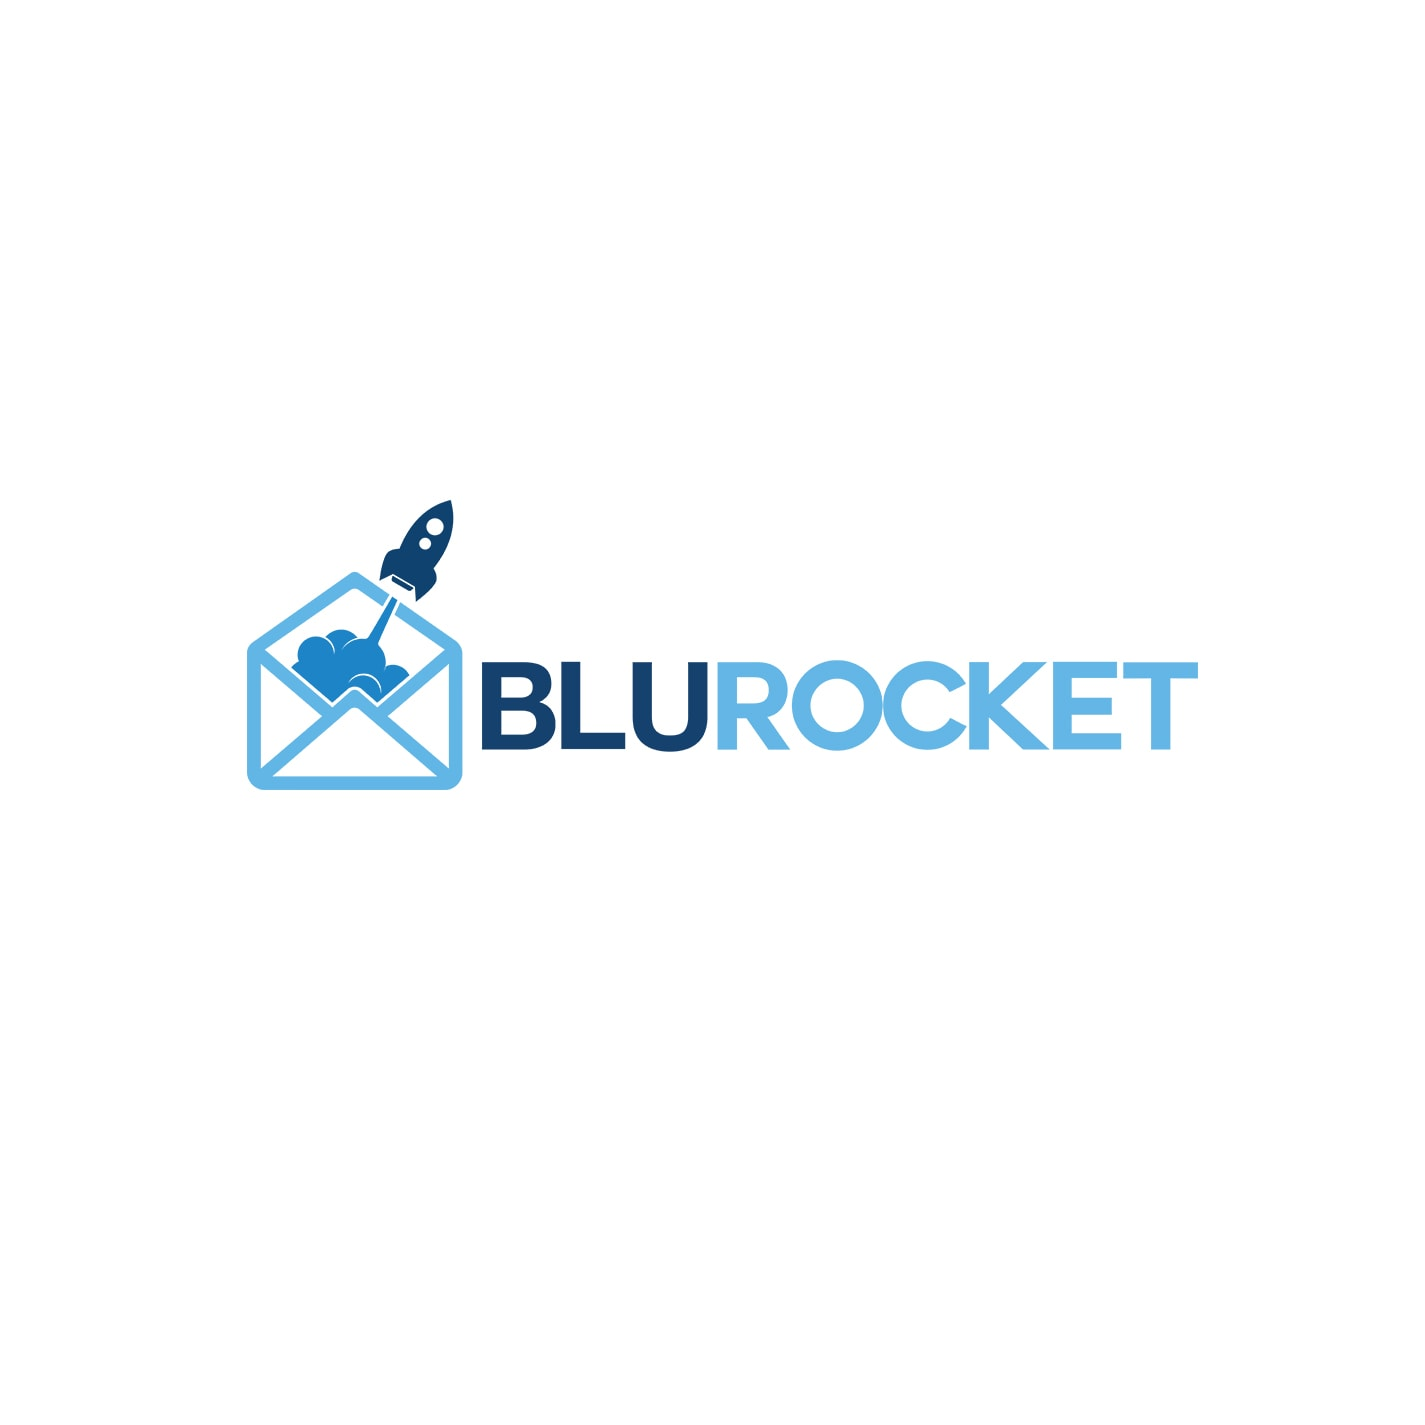 blurocket-logo-design-accolademedia